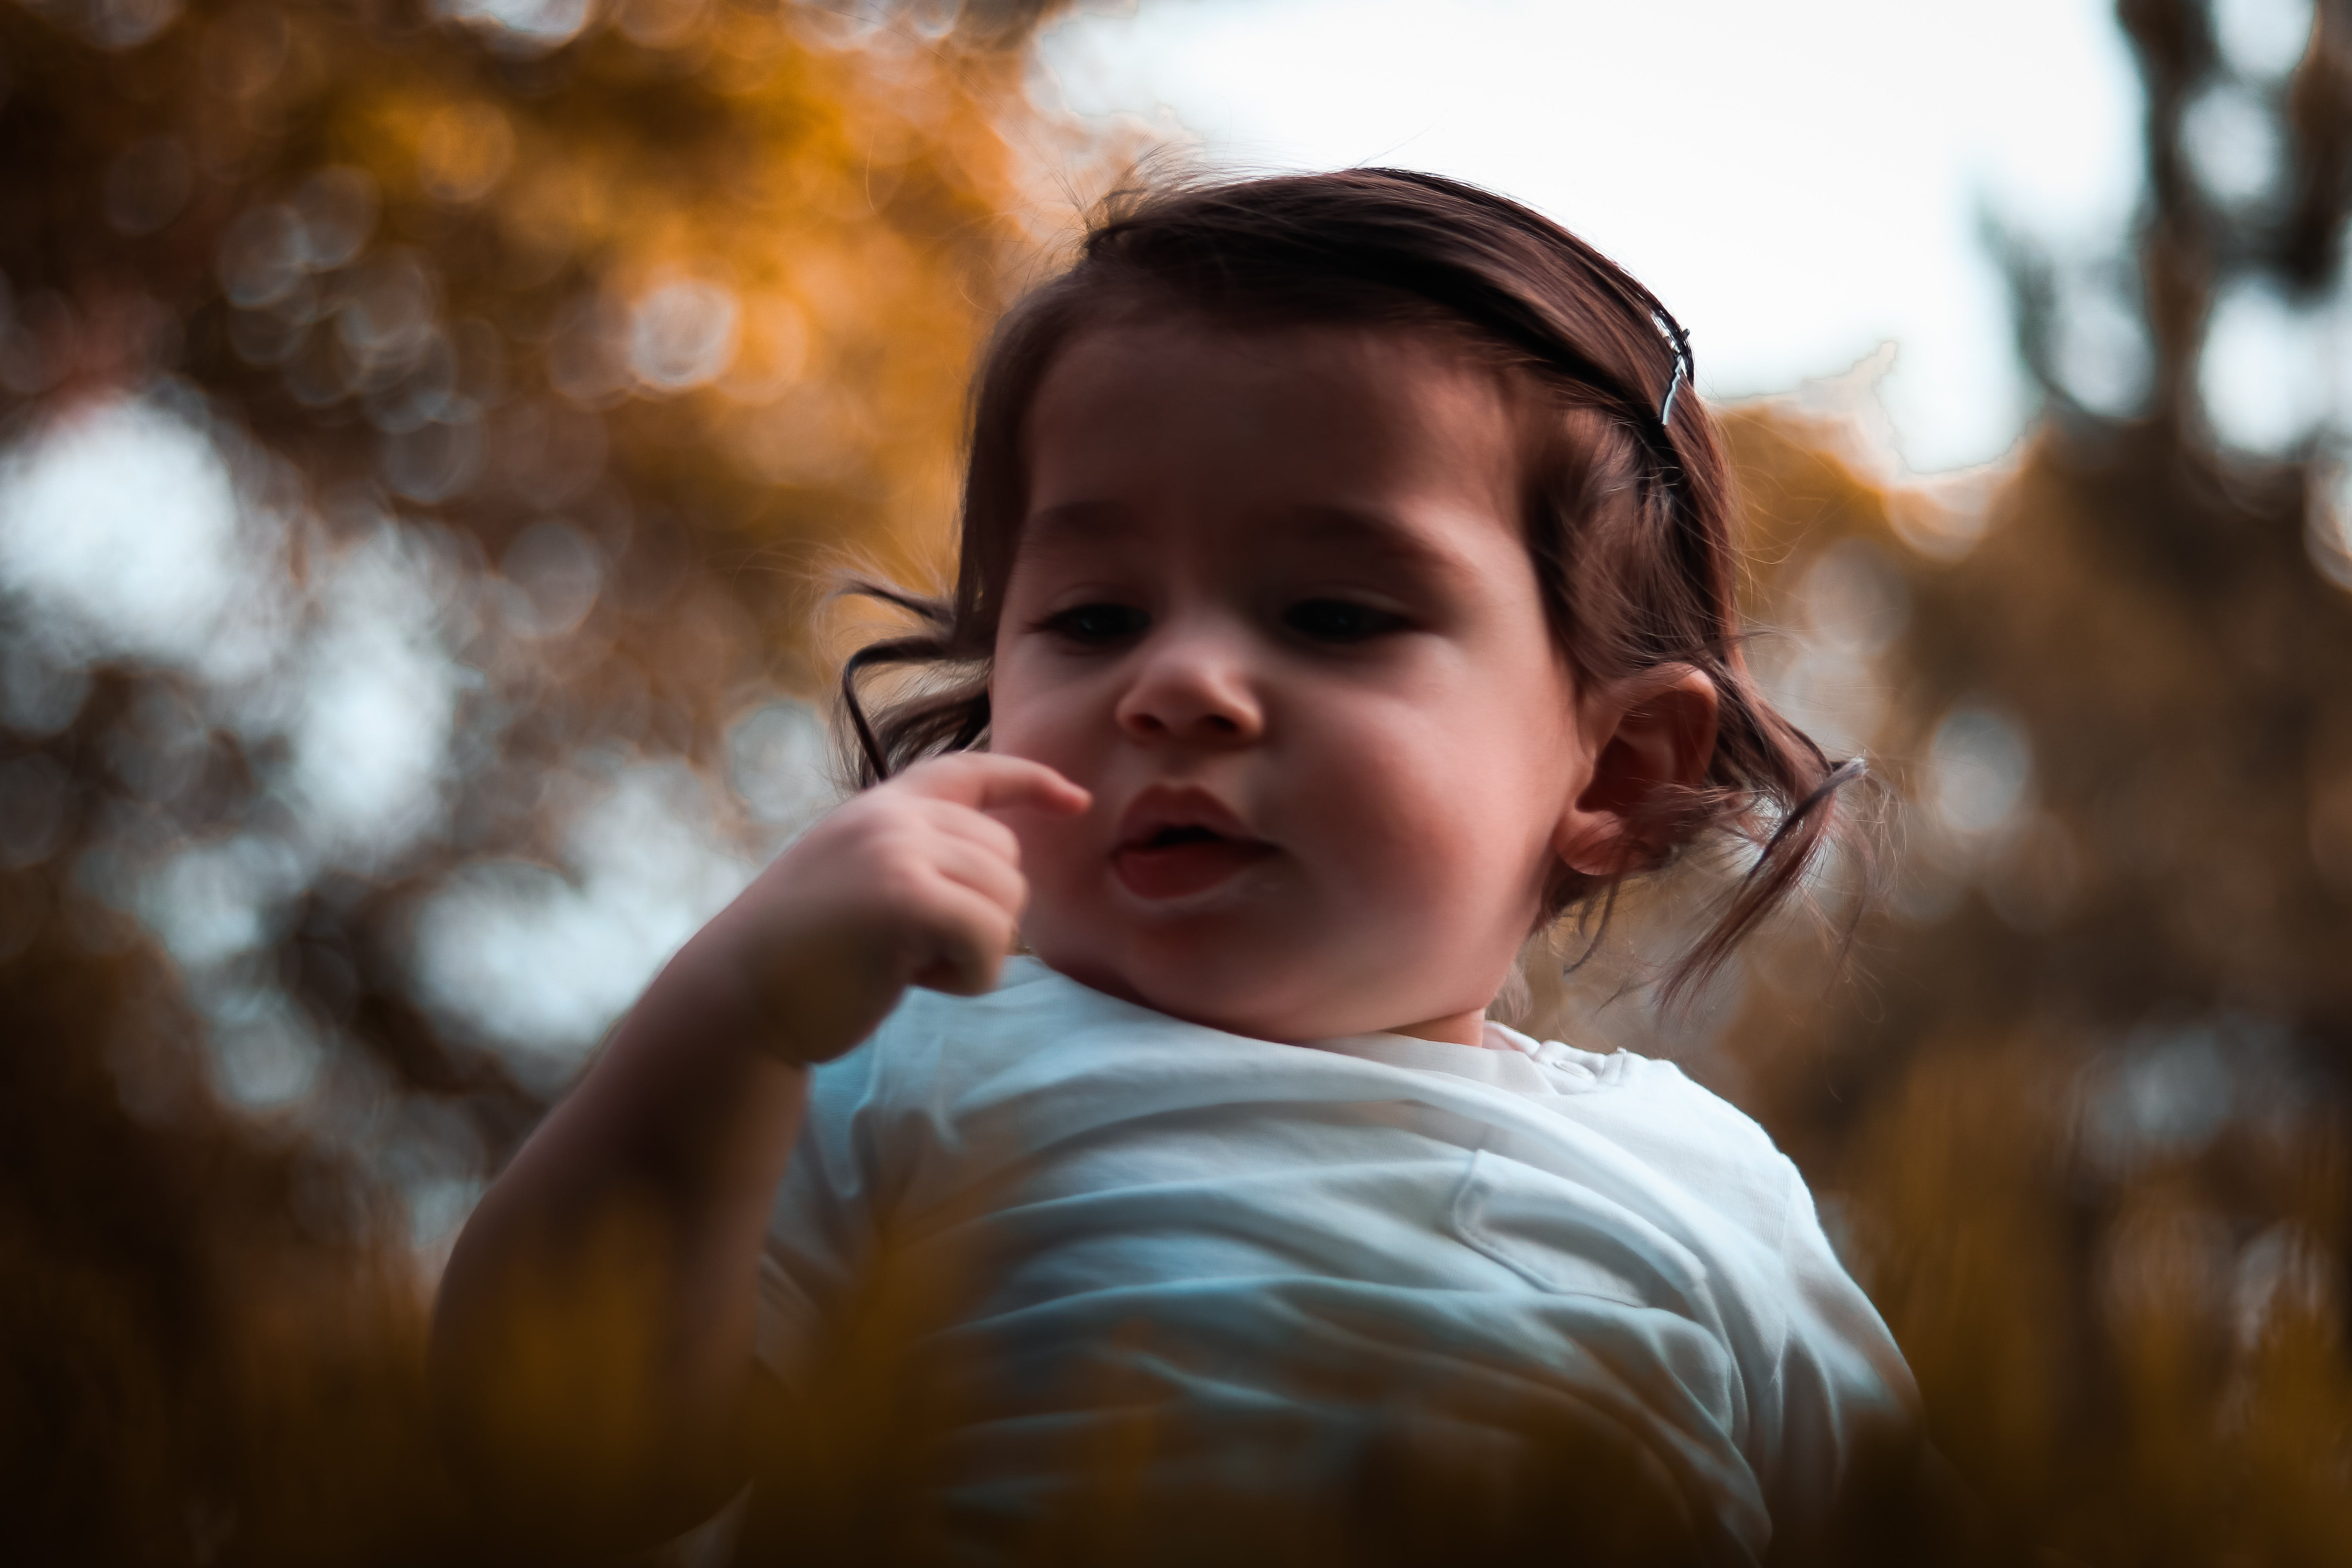 Selective Focus Photography of a Toddler